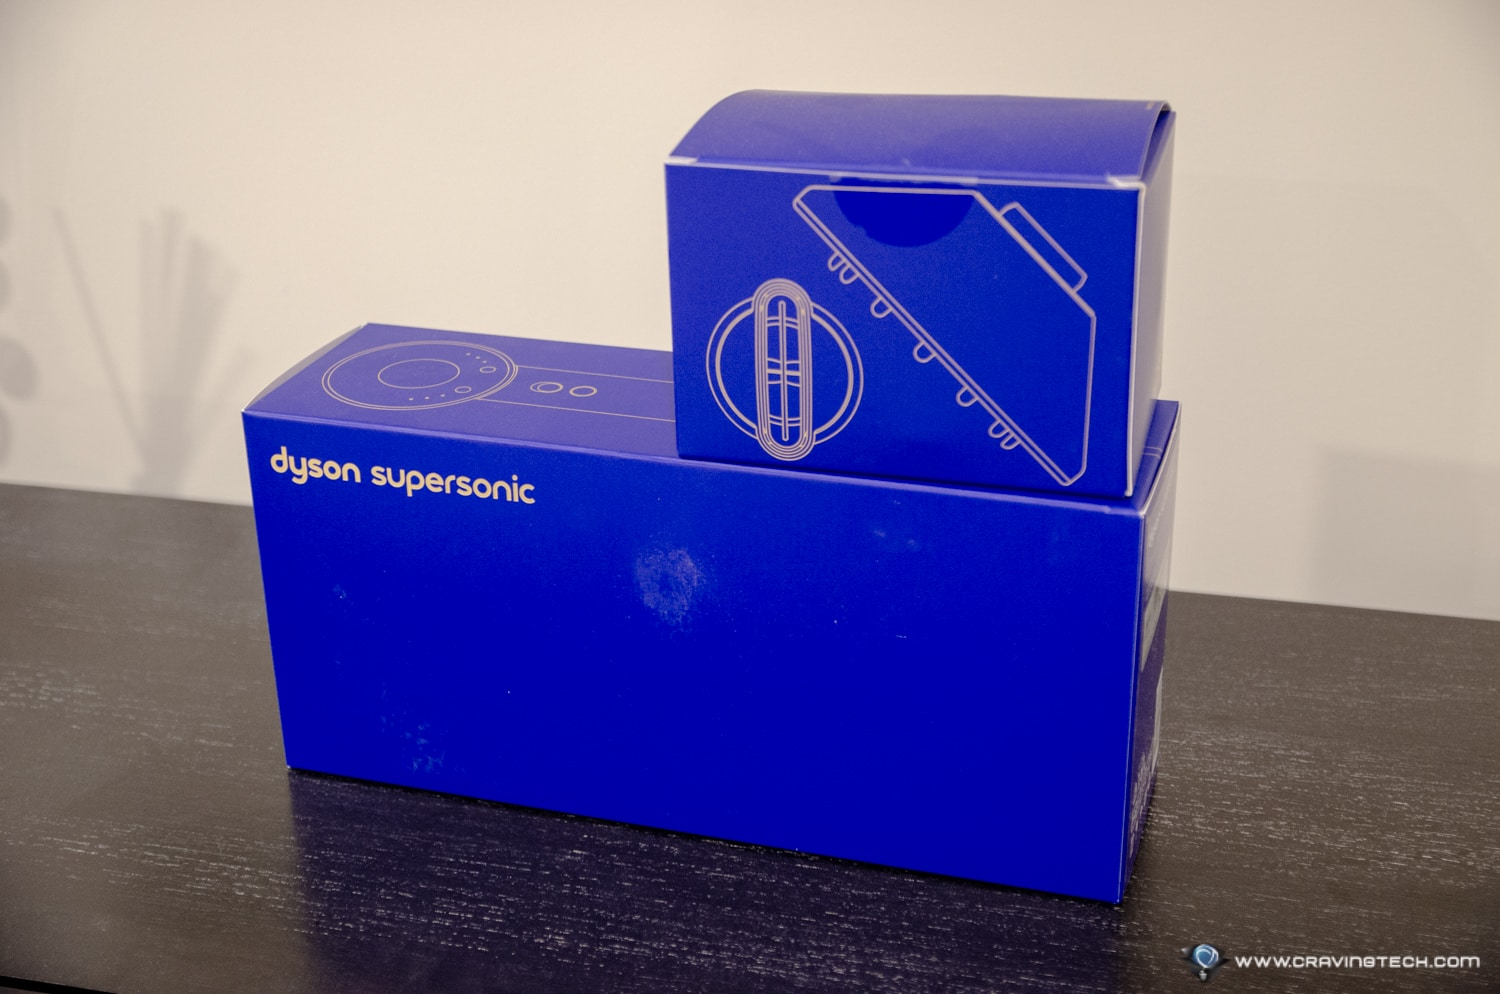 Dyson Supersonic Limited Edition in Gold Packaging